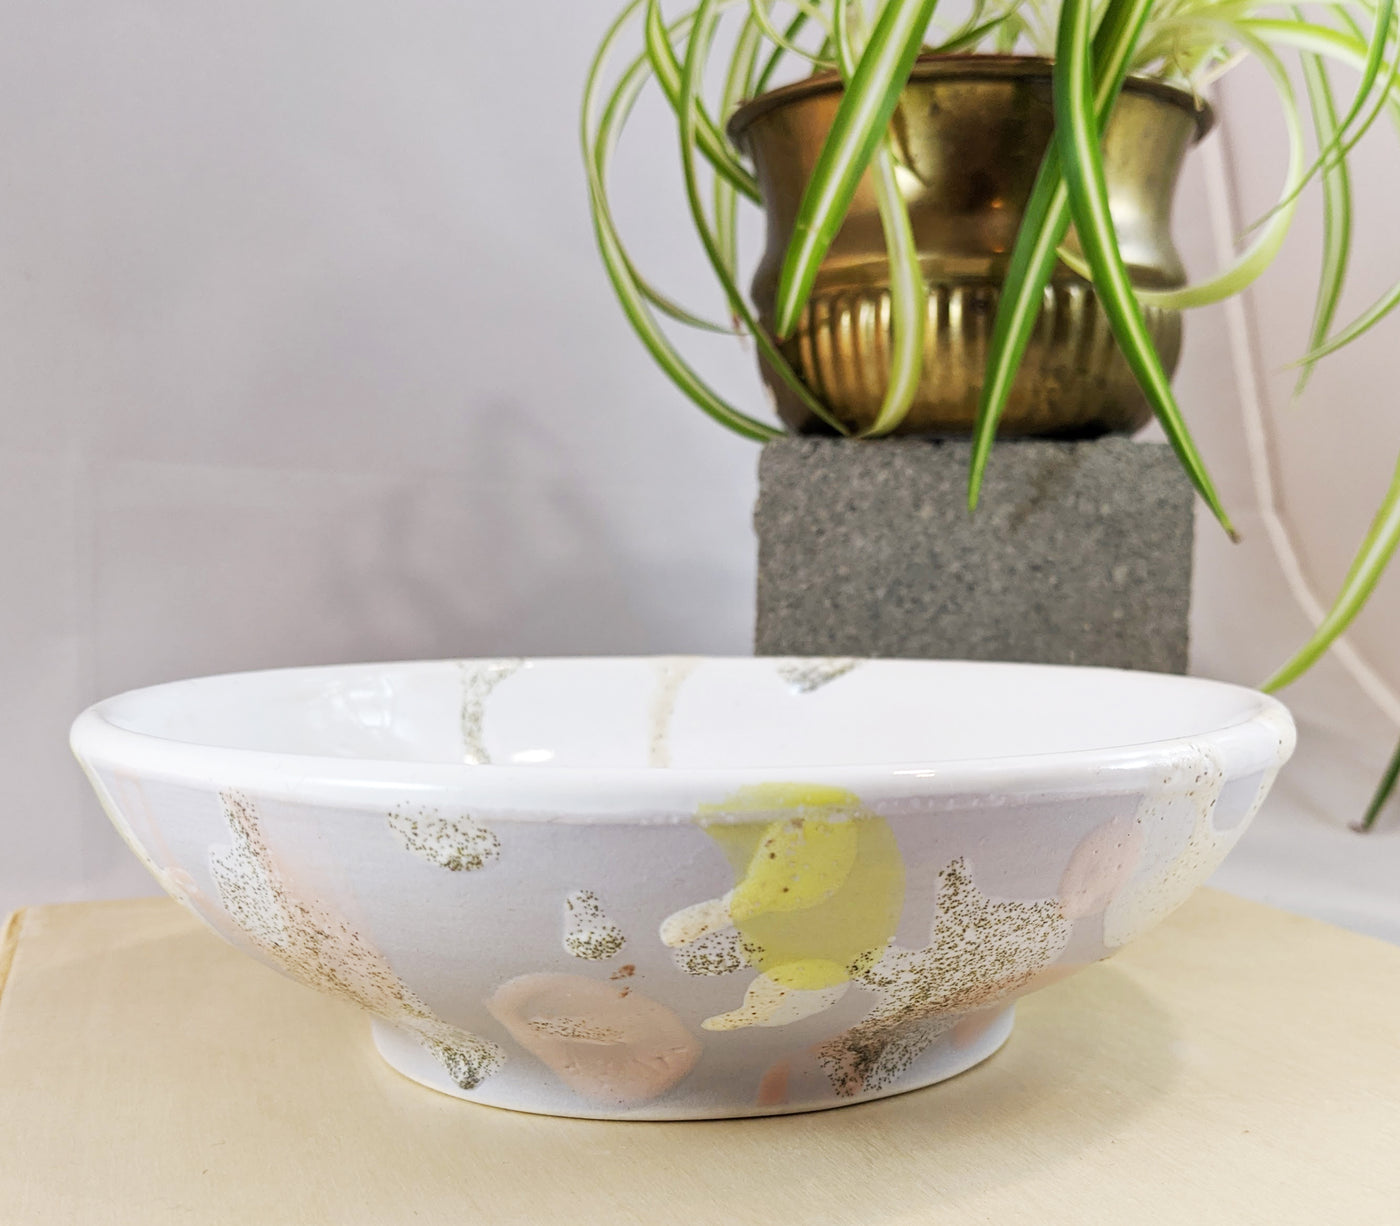 Pastel swoosh ceramic bowl by Meg Hubert available at Local Assembly